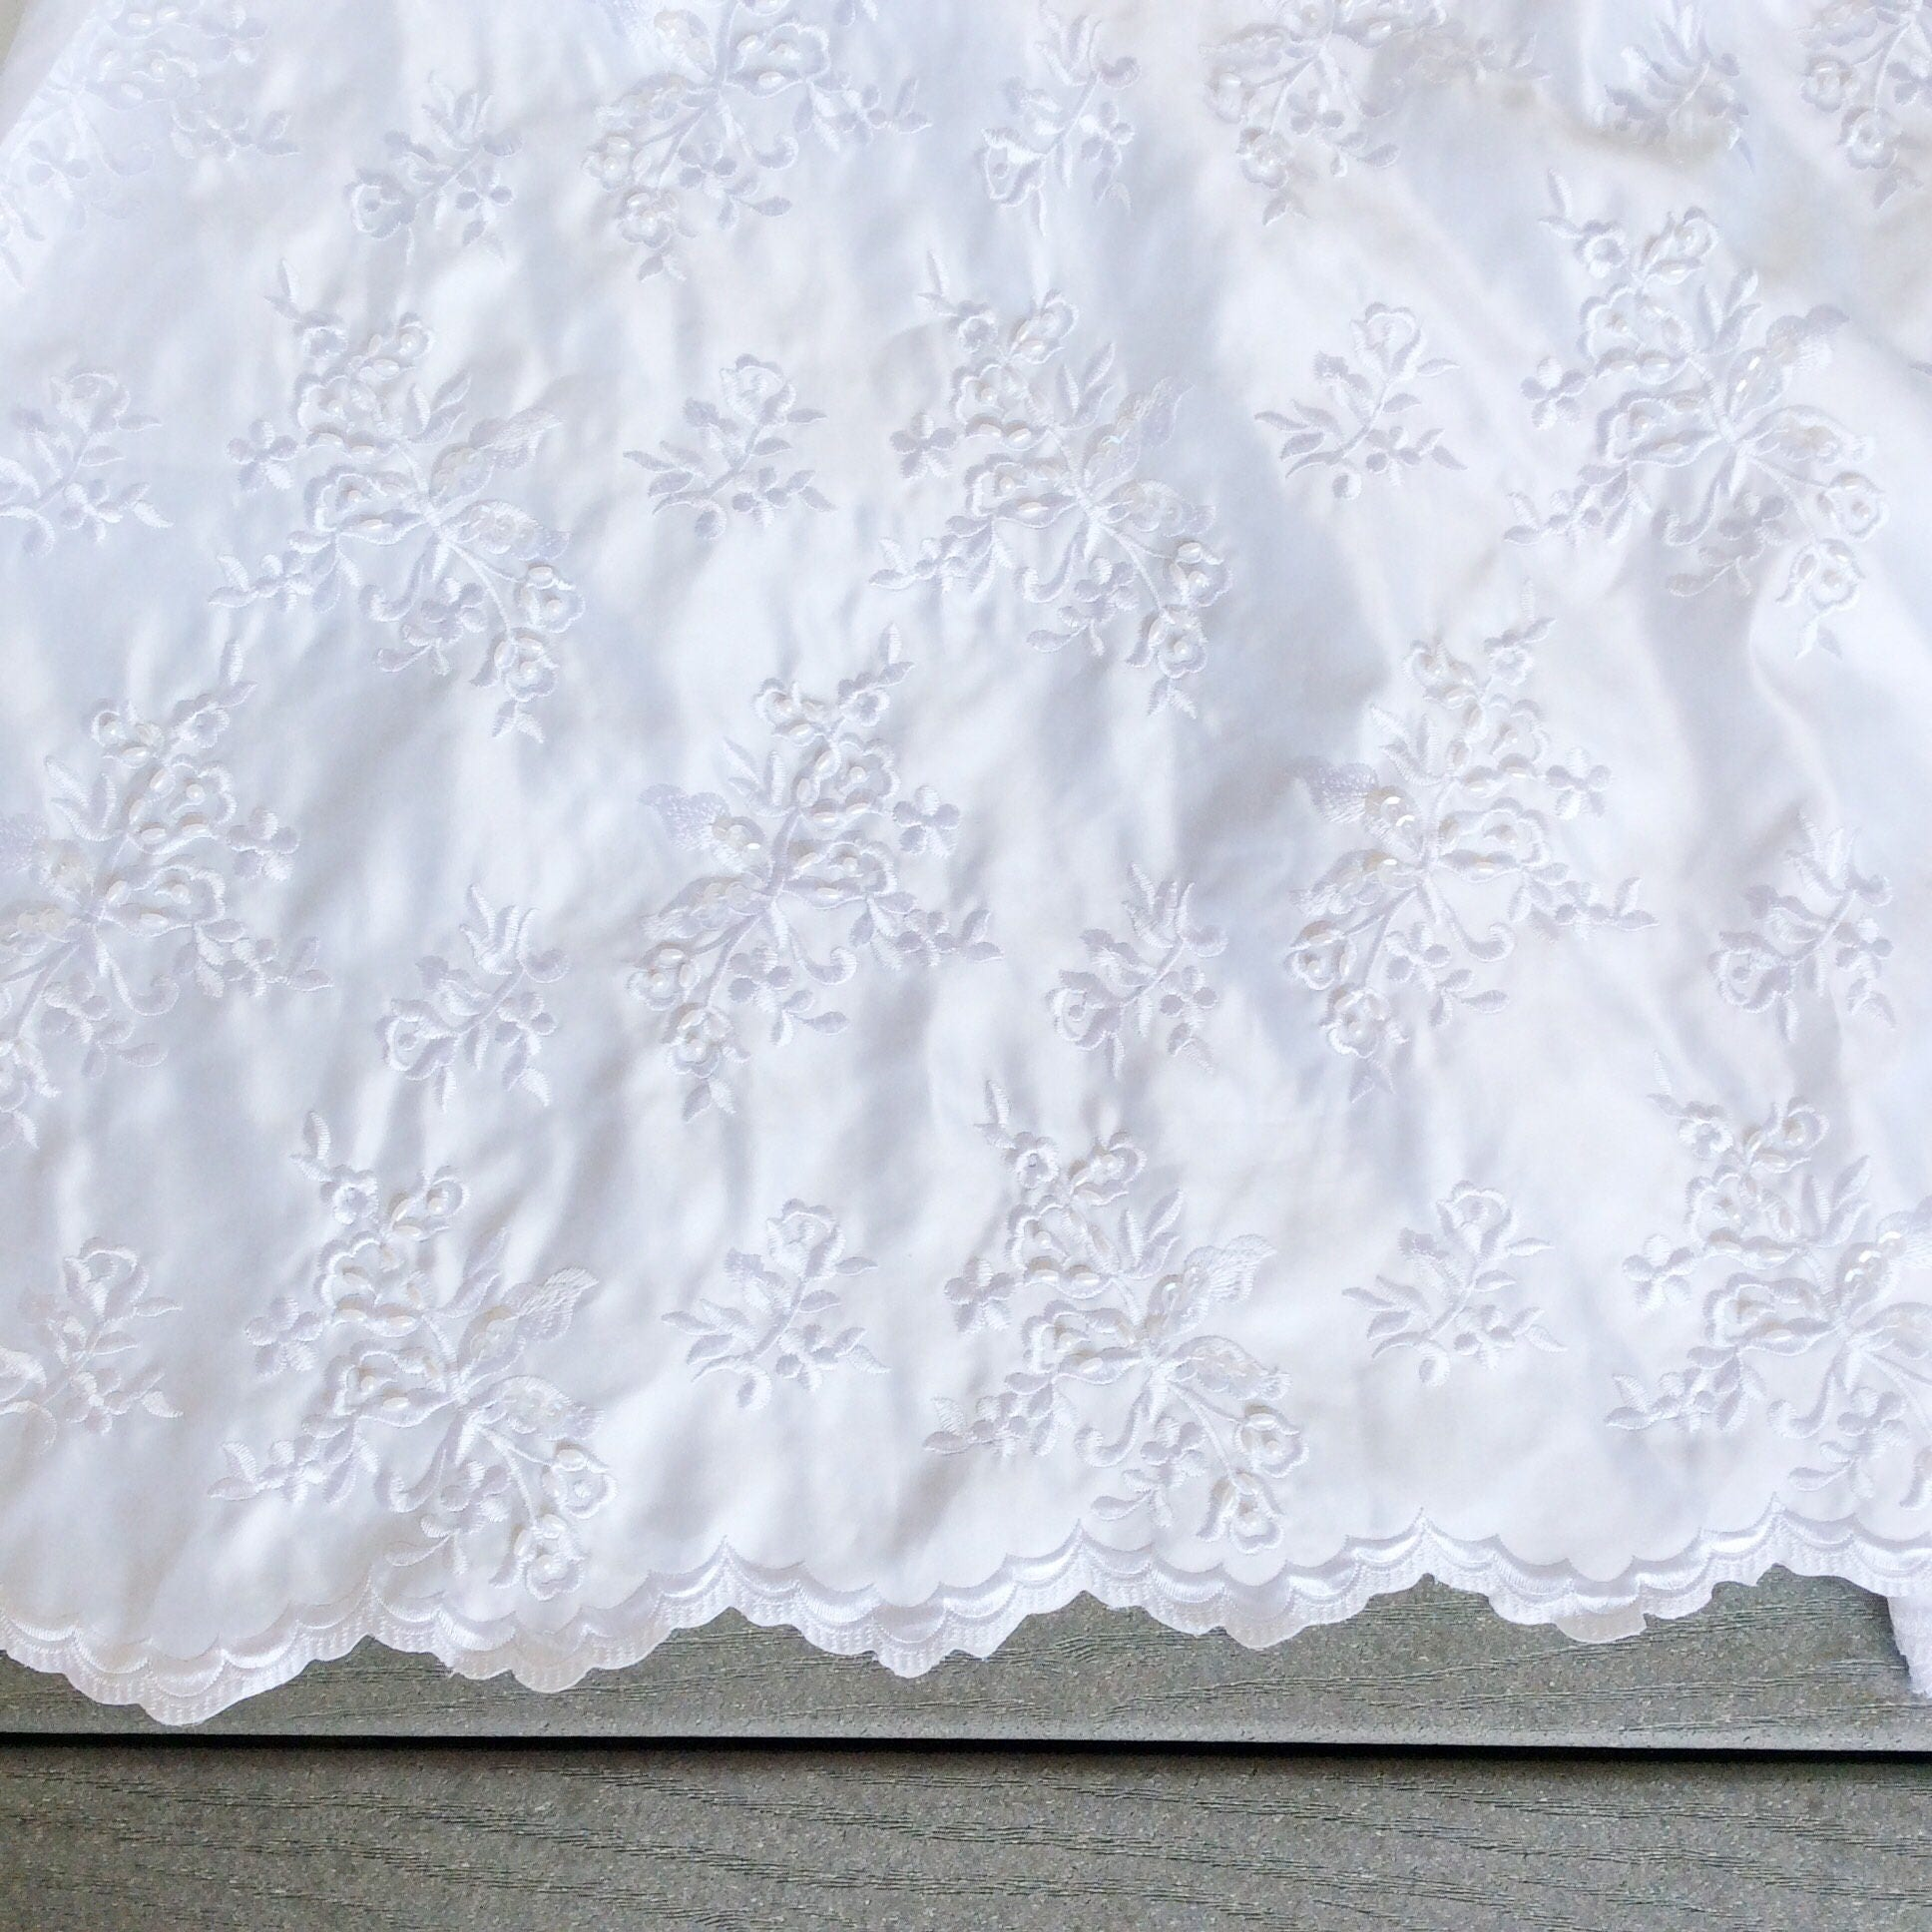 White satin wedding fabric by the yard designer lace for Wedding dress lace fabric